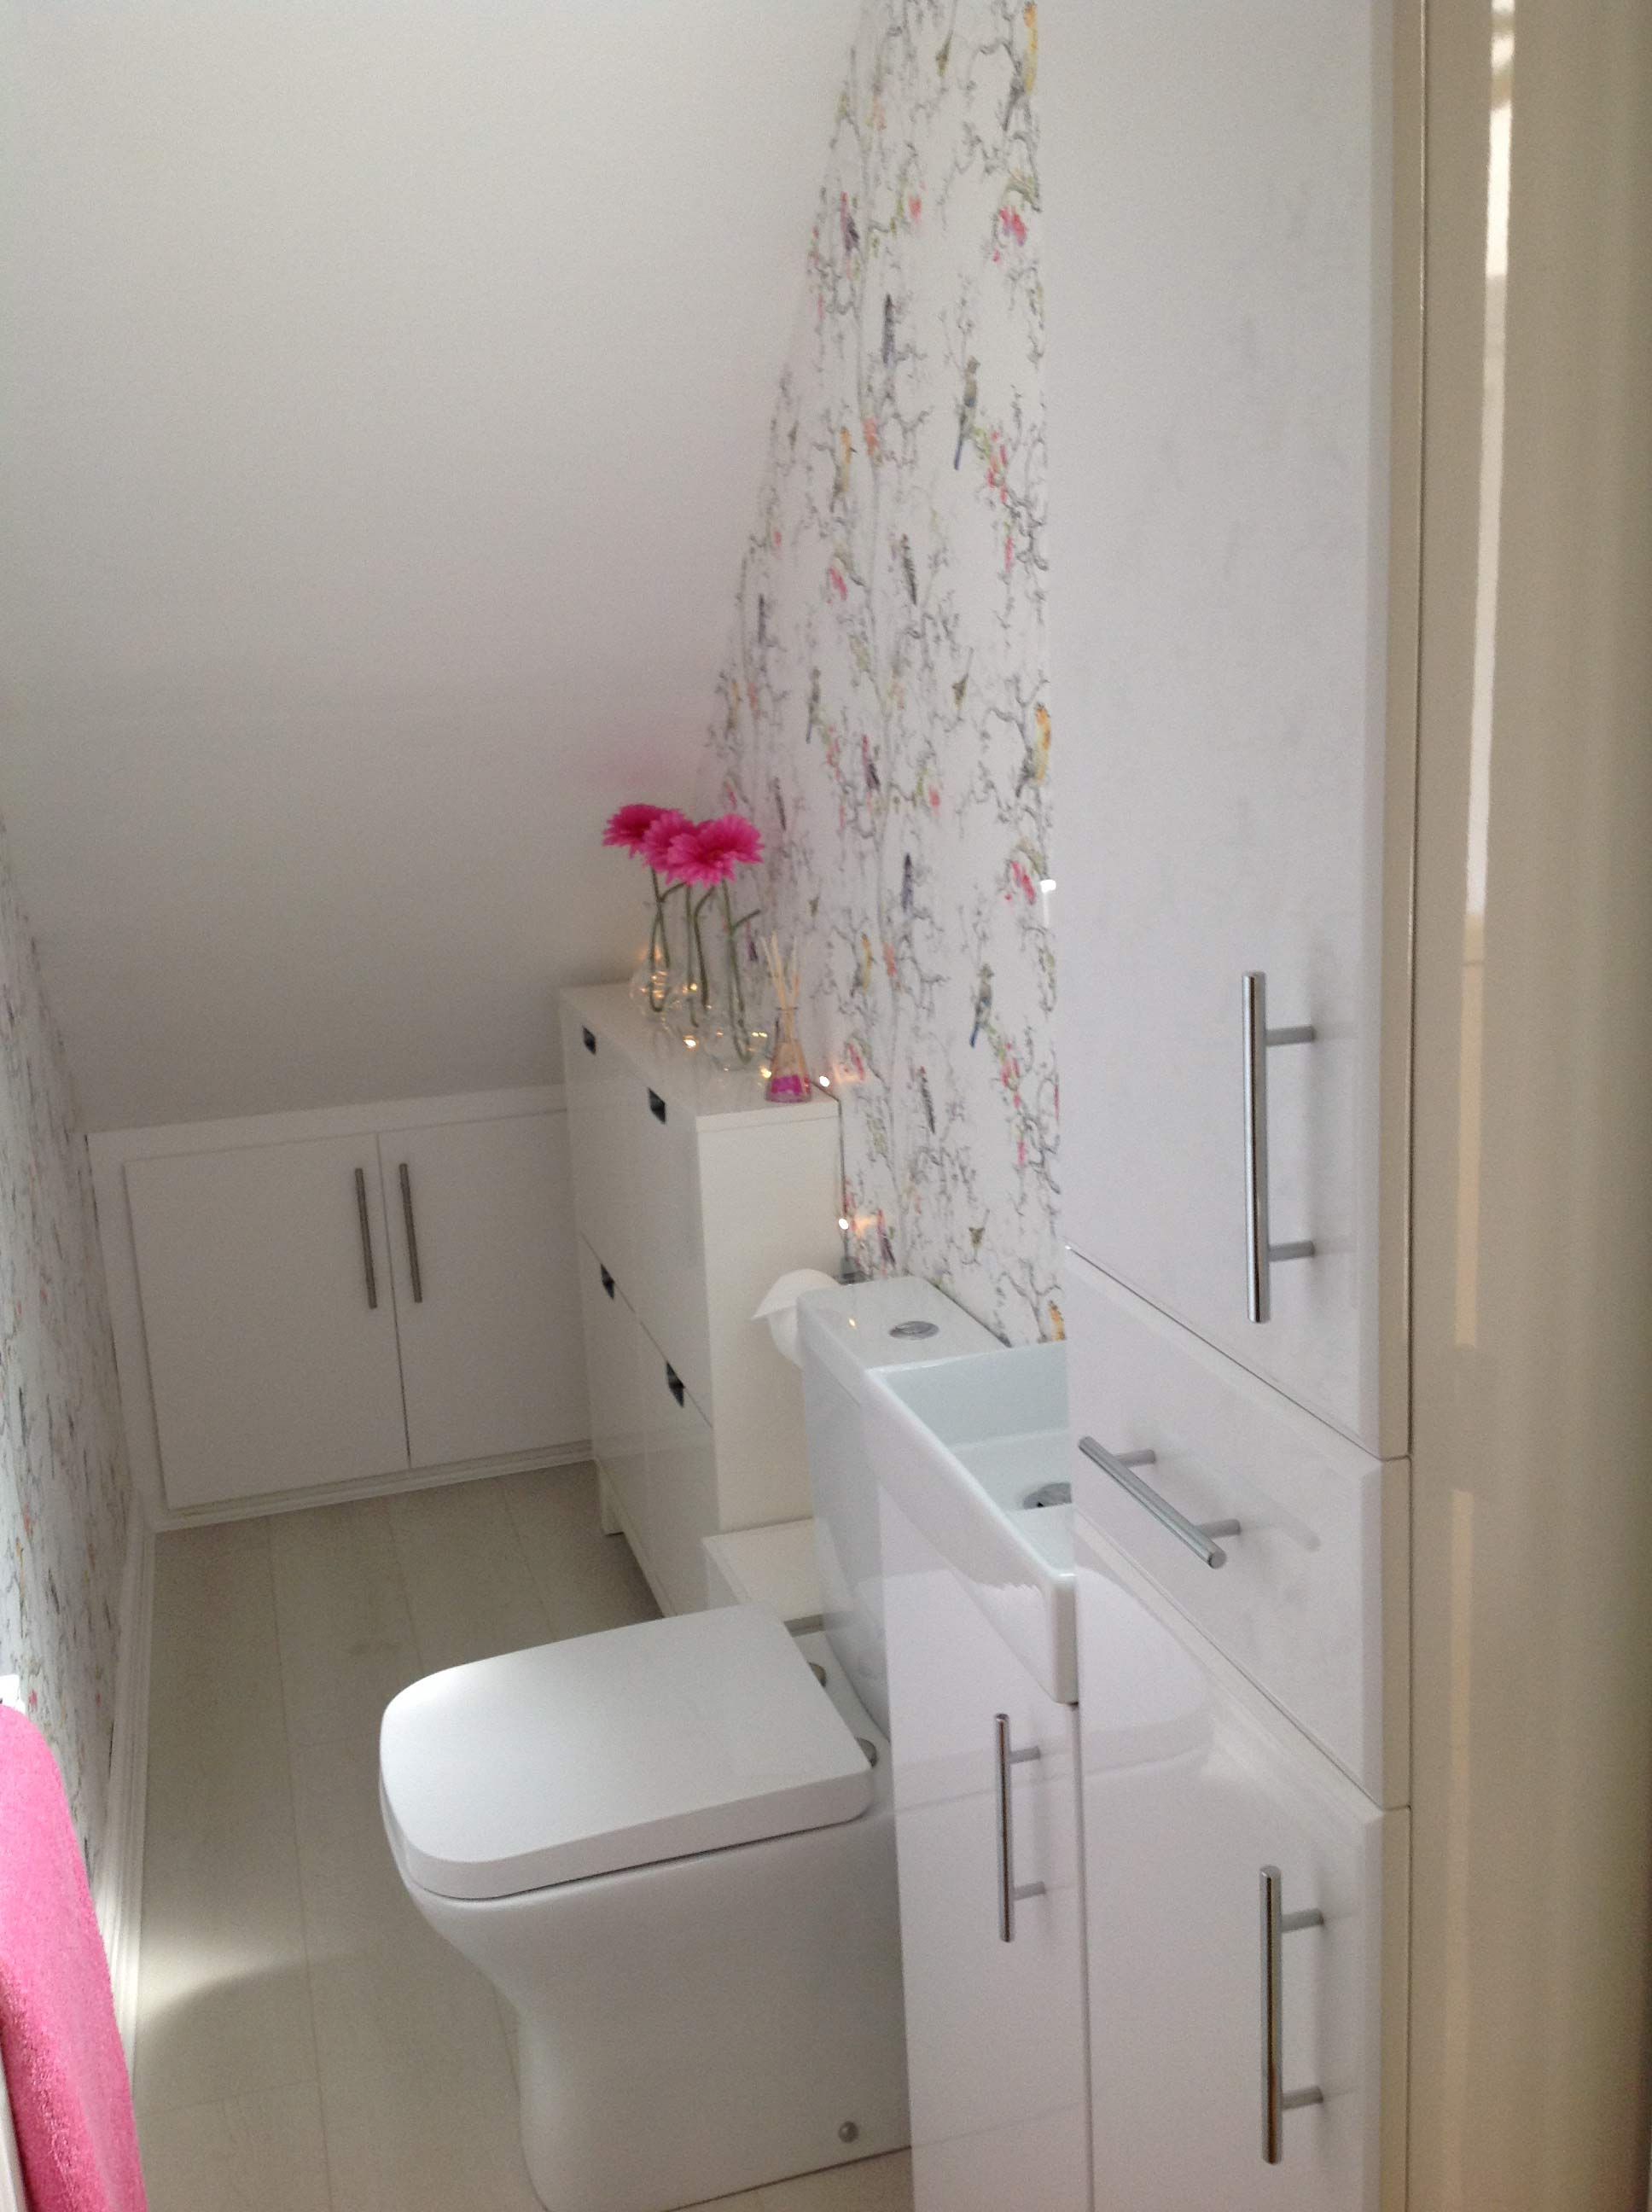 Tracey's white under stairs bathroom | Tracey's Under Stairs Bathroom - Barnoldswick, Lancashire